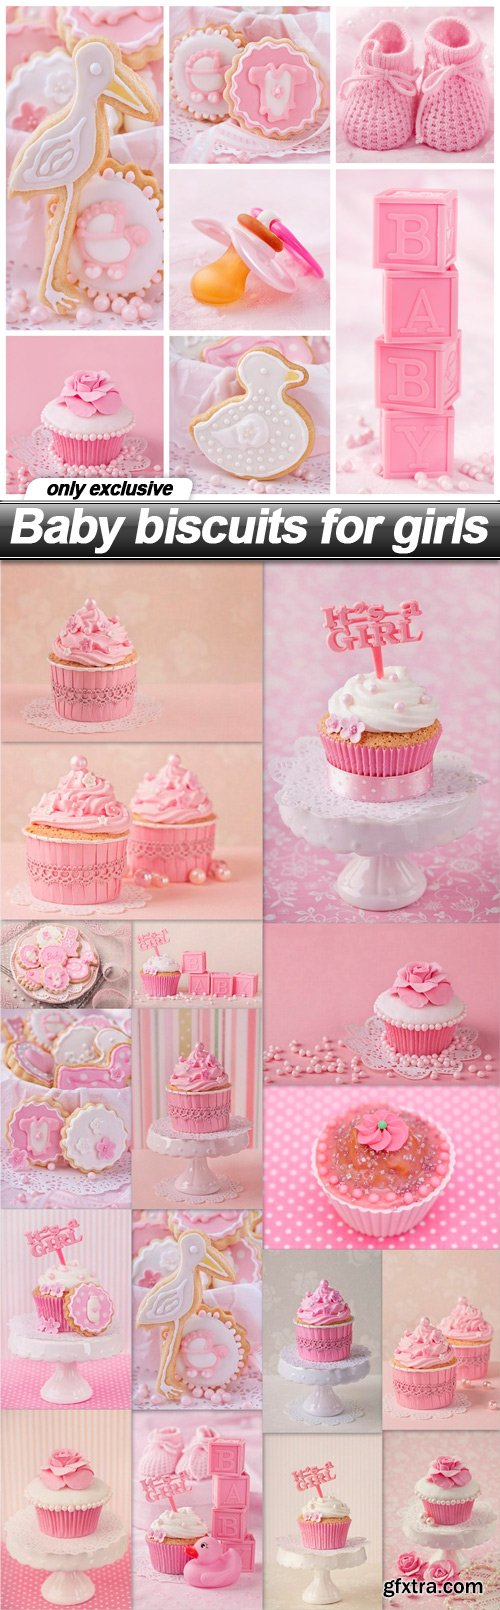 Baby biscuits for girls - 18 UHQ JPEG